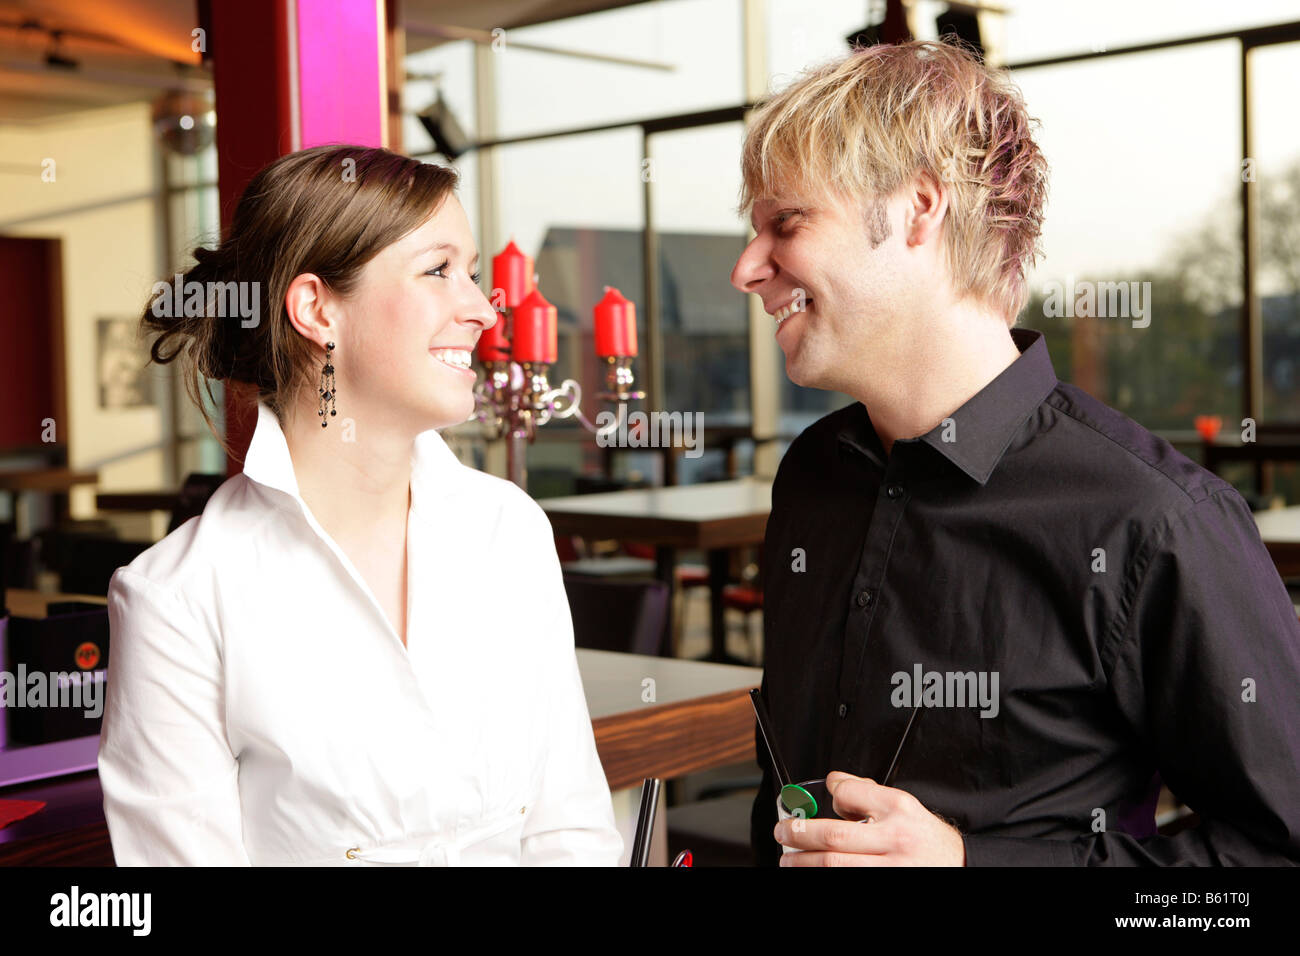 Man and woman smiling in a bar - Stock Image